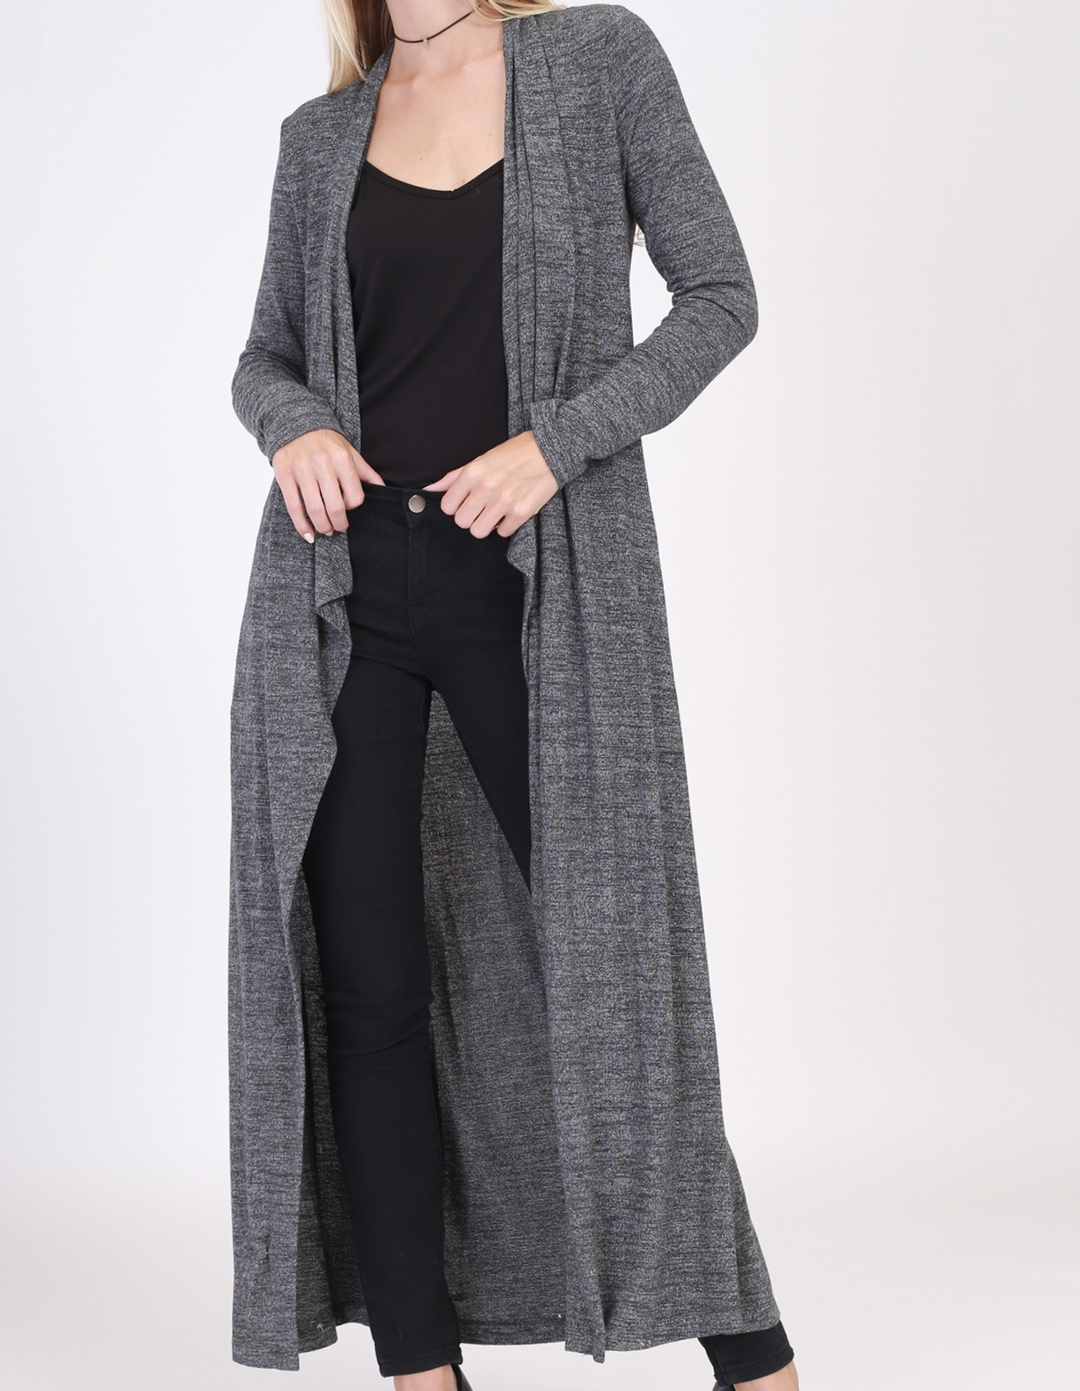 HYFVE long sleeve cardigan